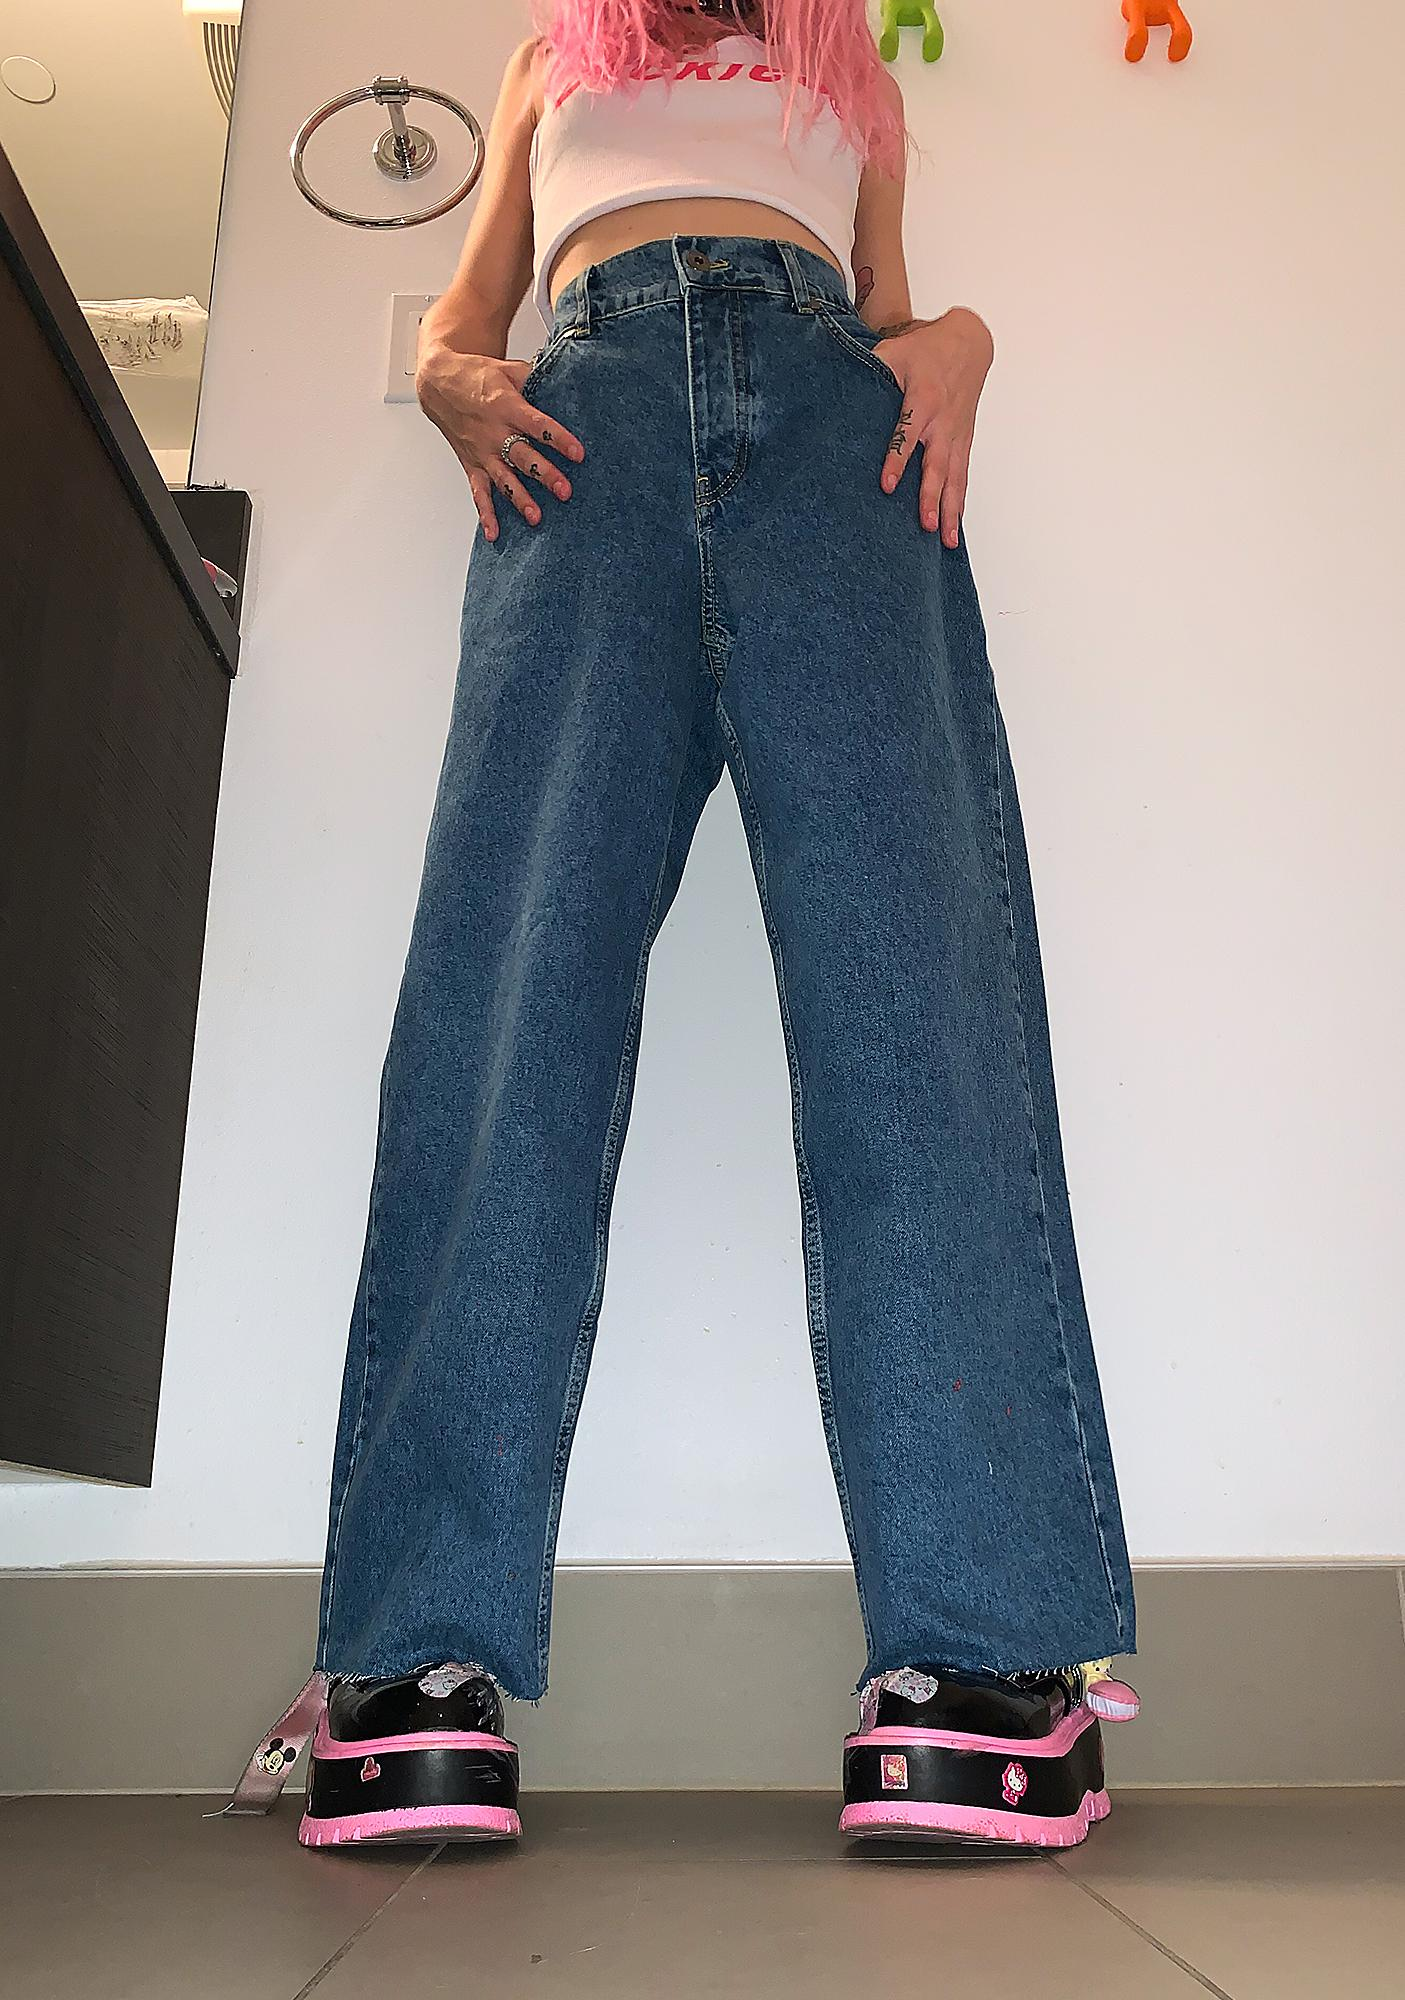 The Ragged Priest Grip Skater Wide Leg Jeans